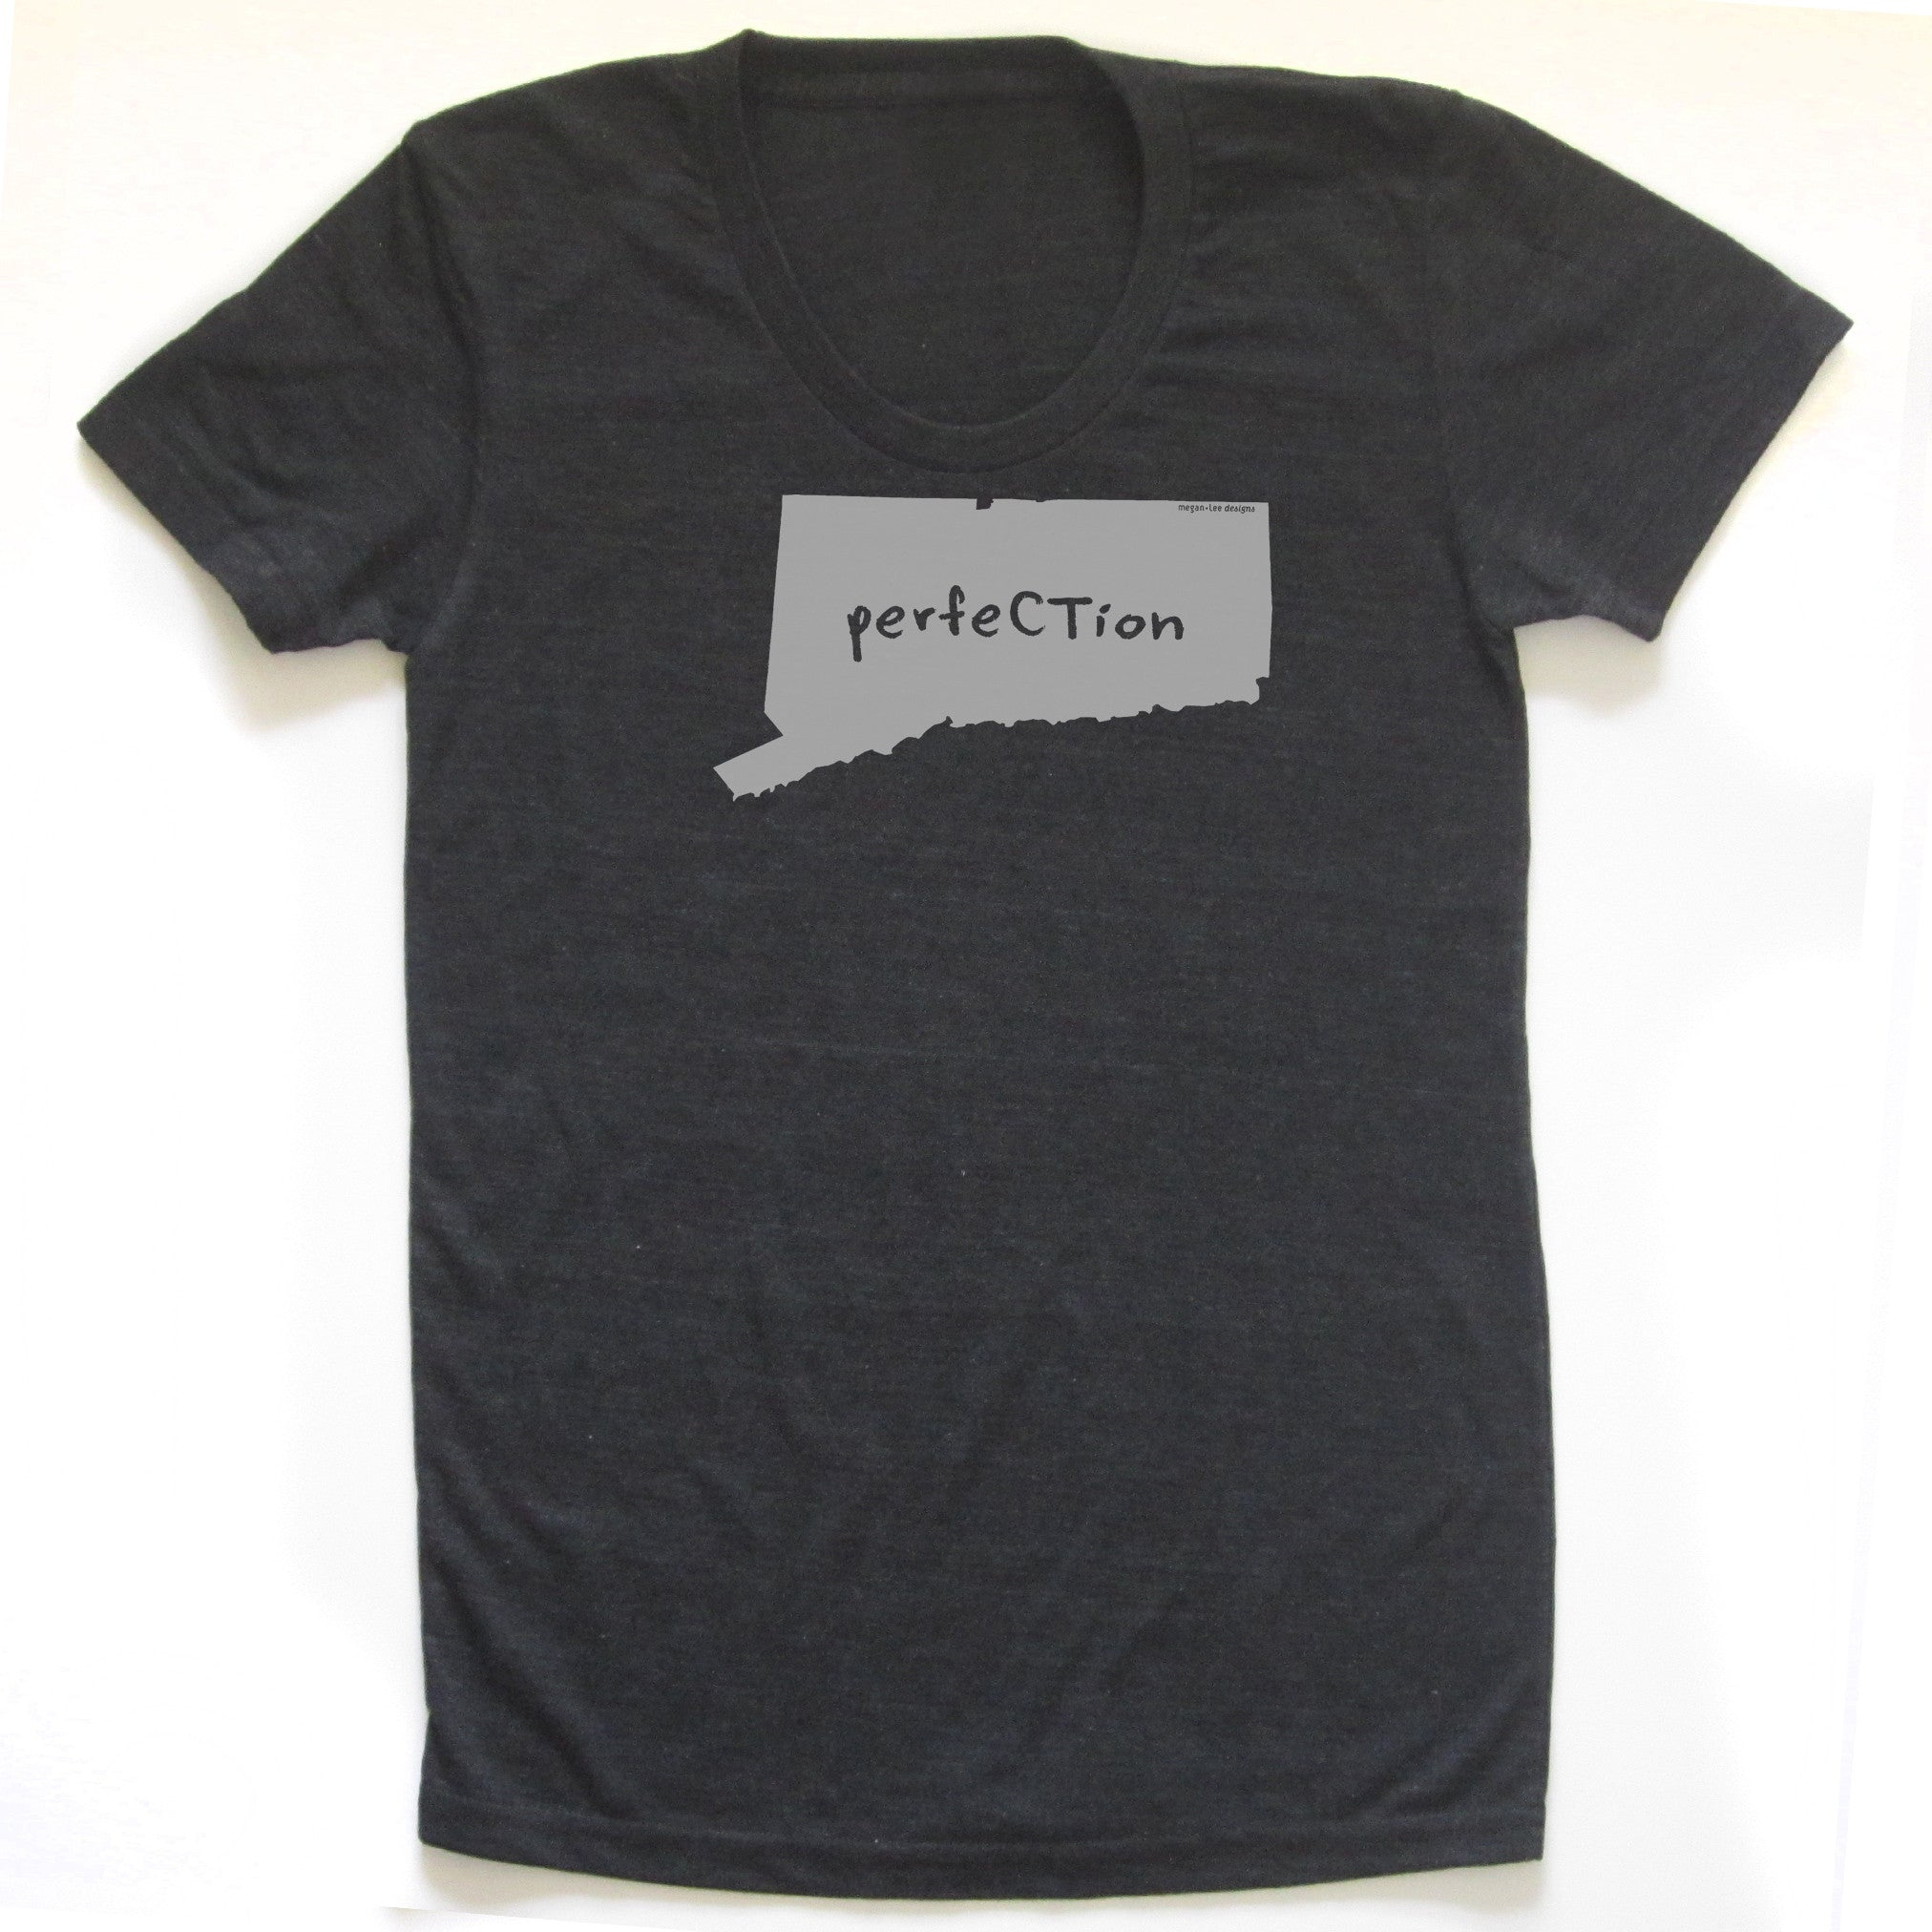 Connecticut : perfeCTion women tri-blend tee, Women's Apparel - Megan Lee Designs